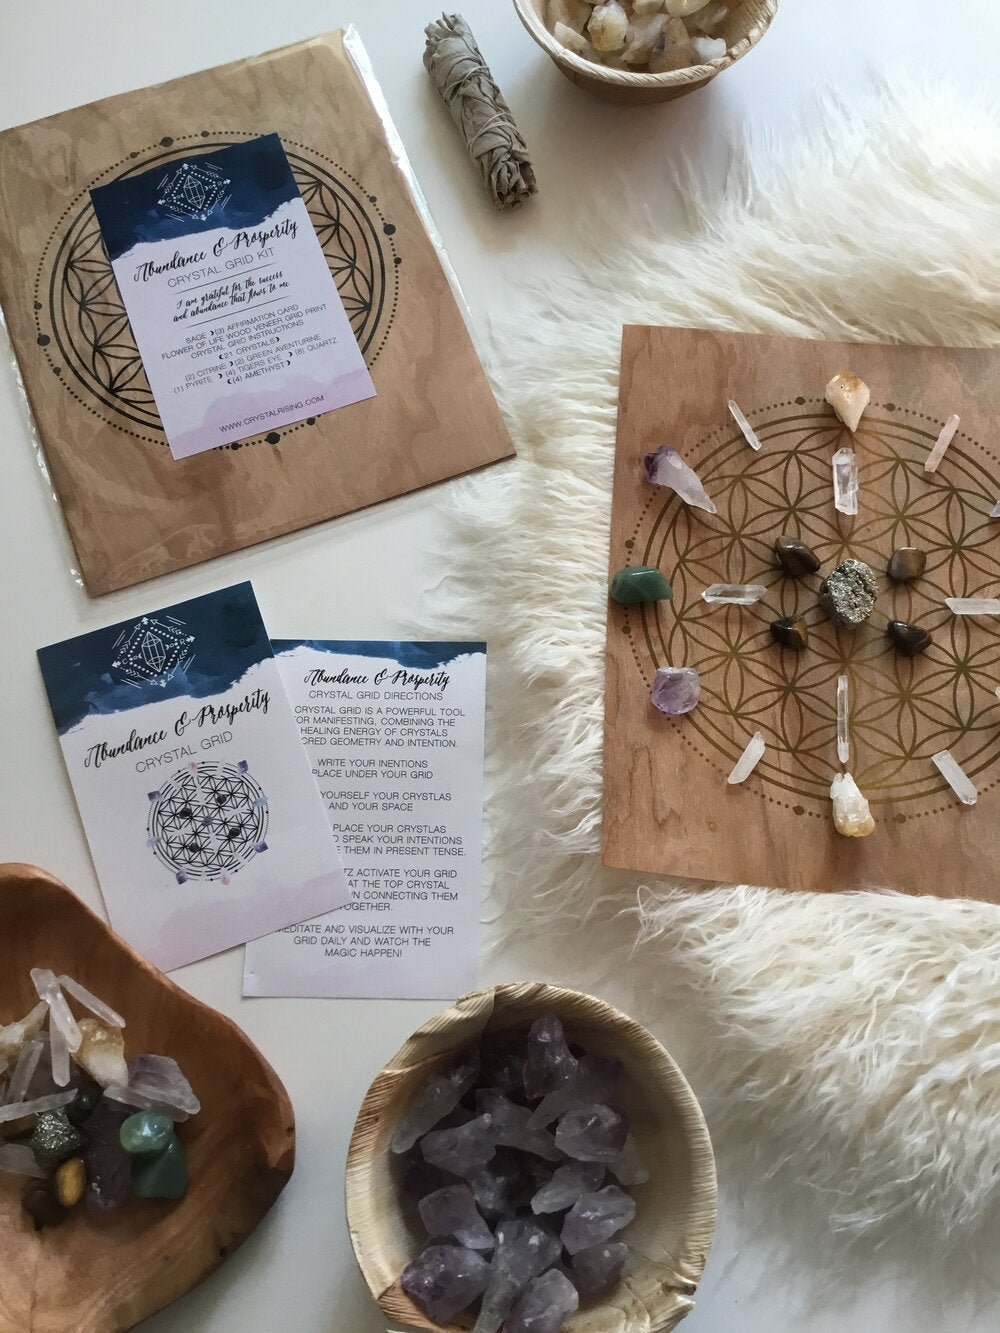 Crystal Rising - Crystal Grid Ritual Kit - for sale at Modest Hemp Co.